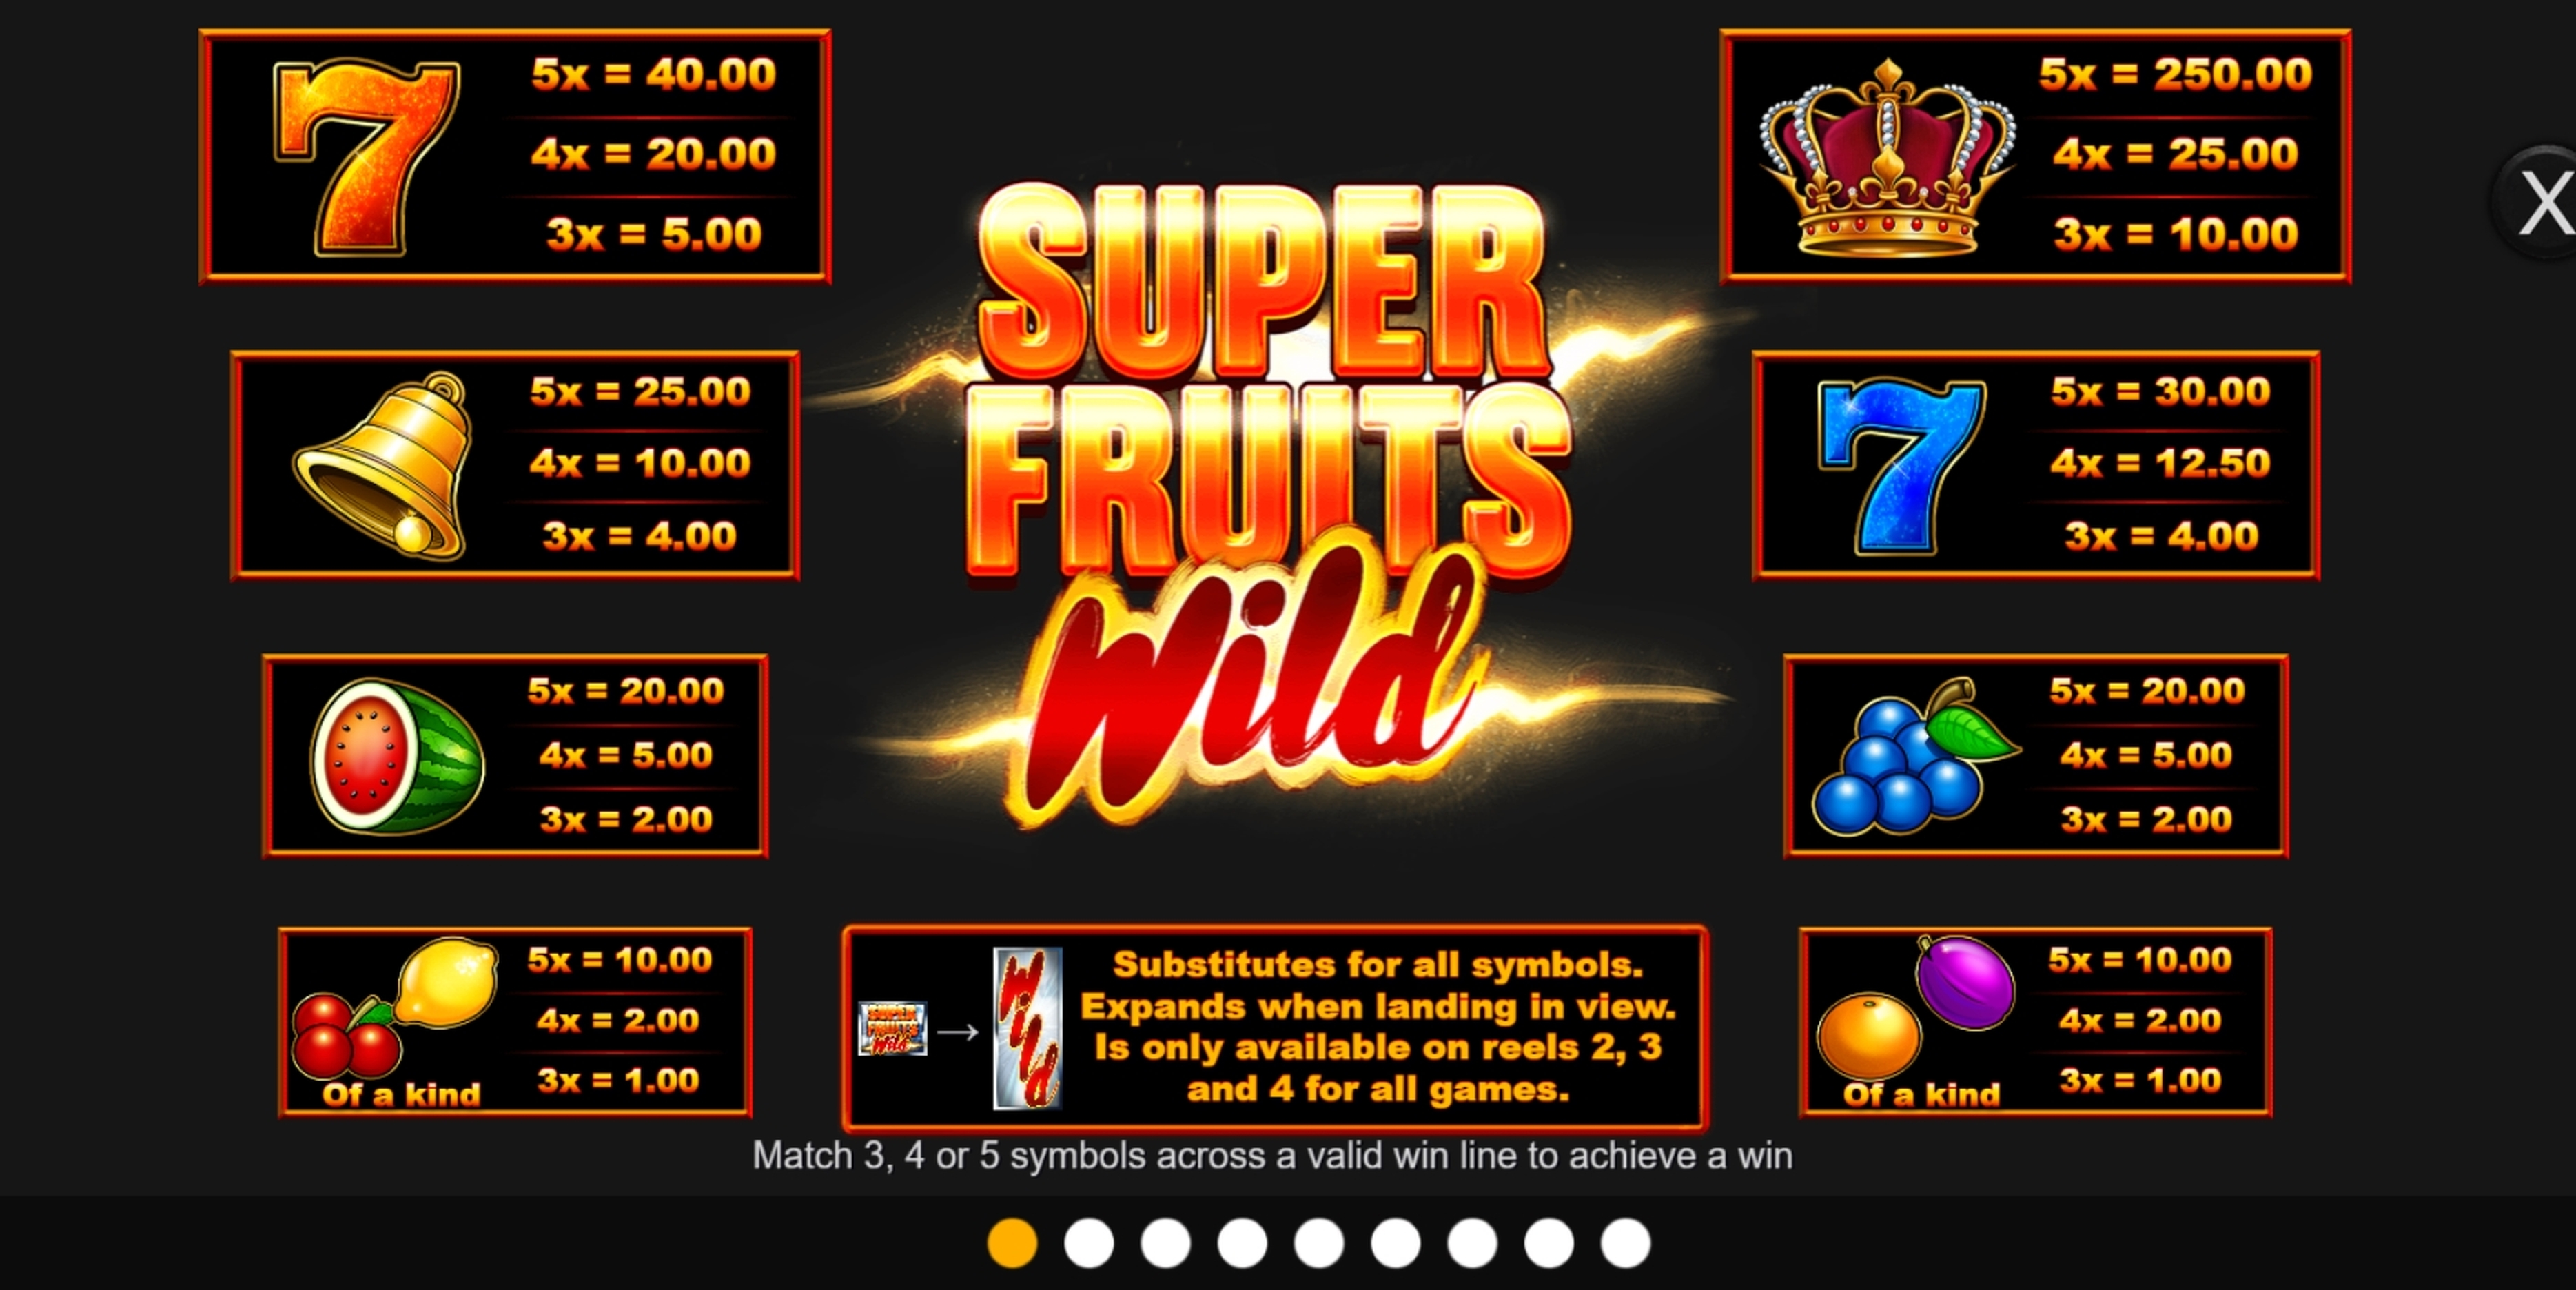 Info of Super Fruits Wild Slot Game by Inspired Gaming